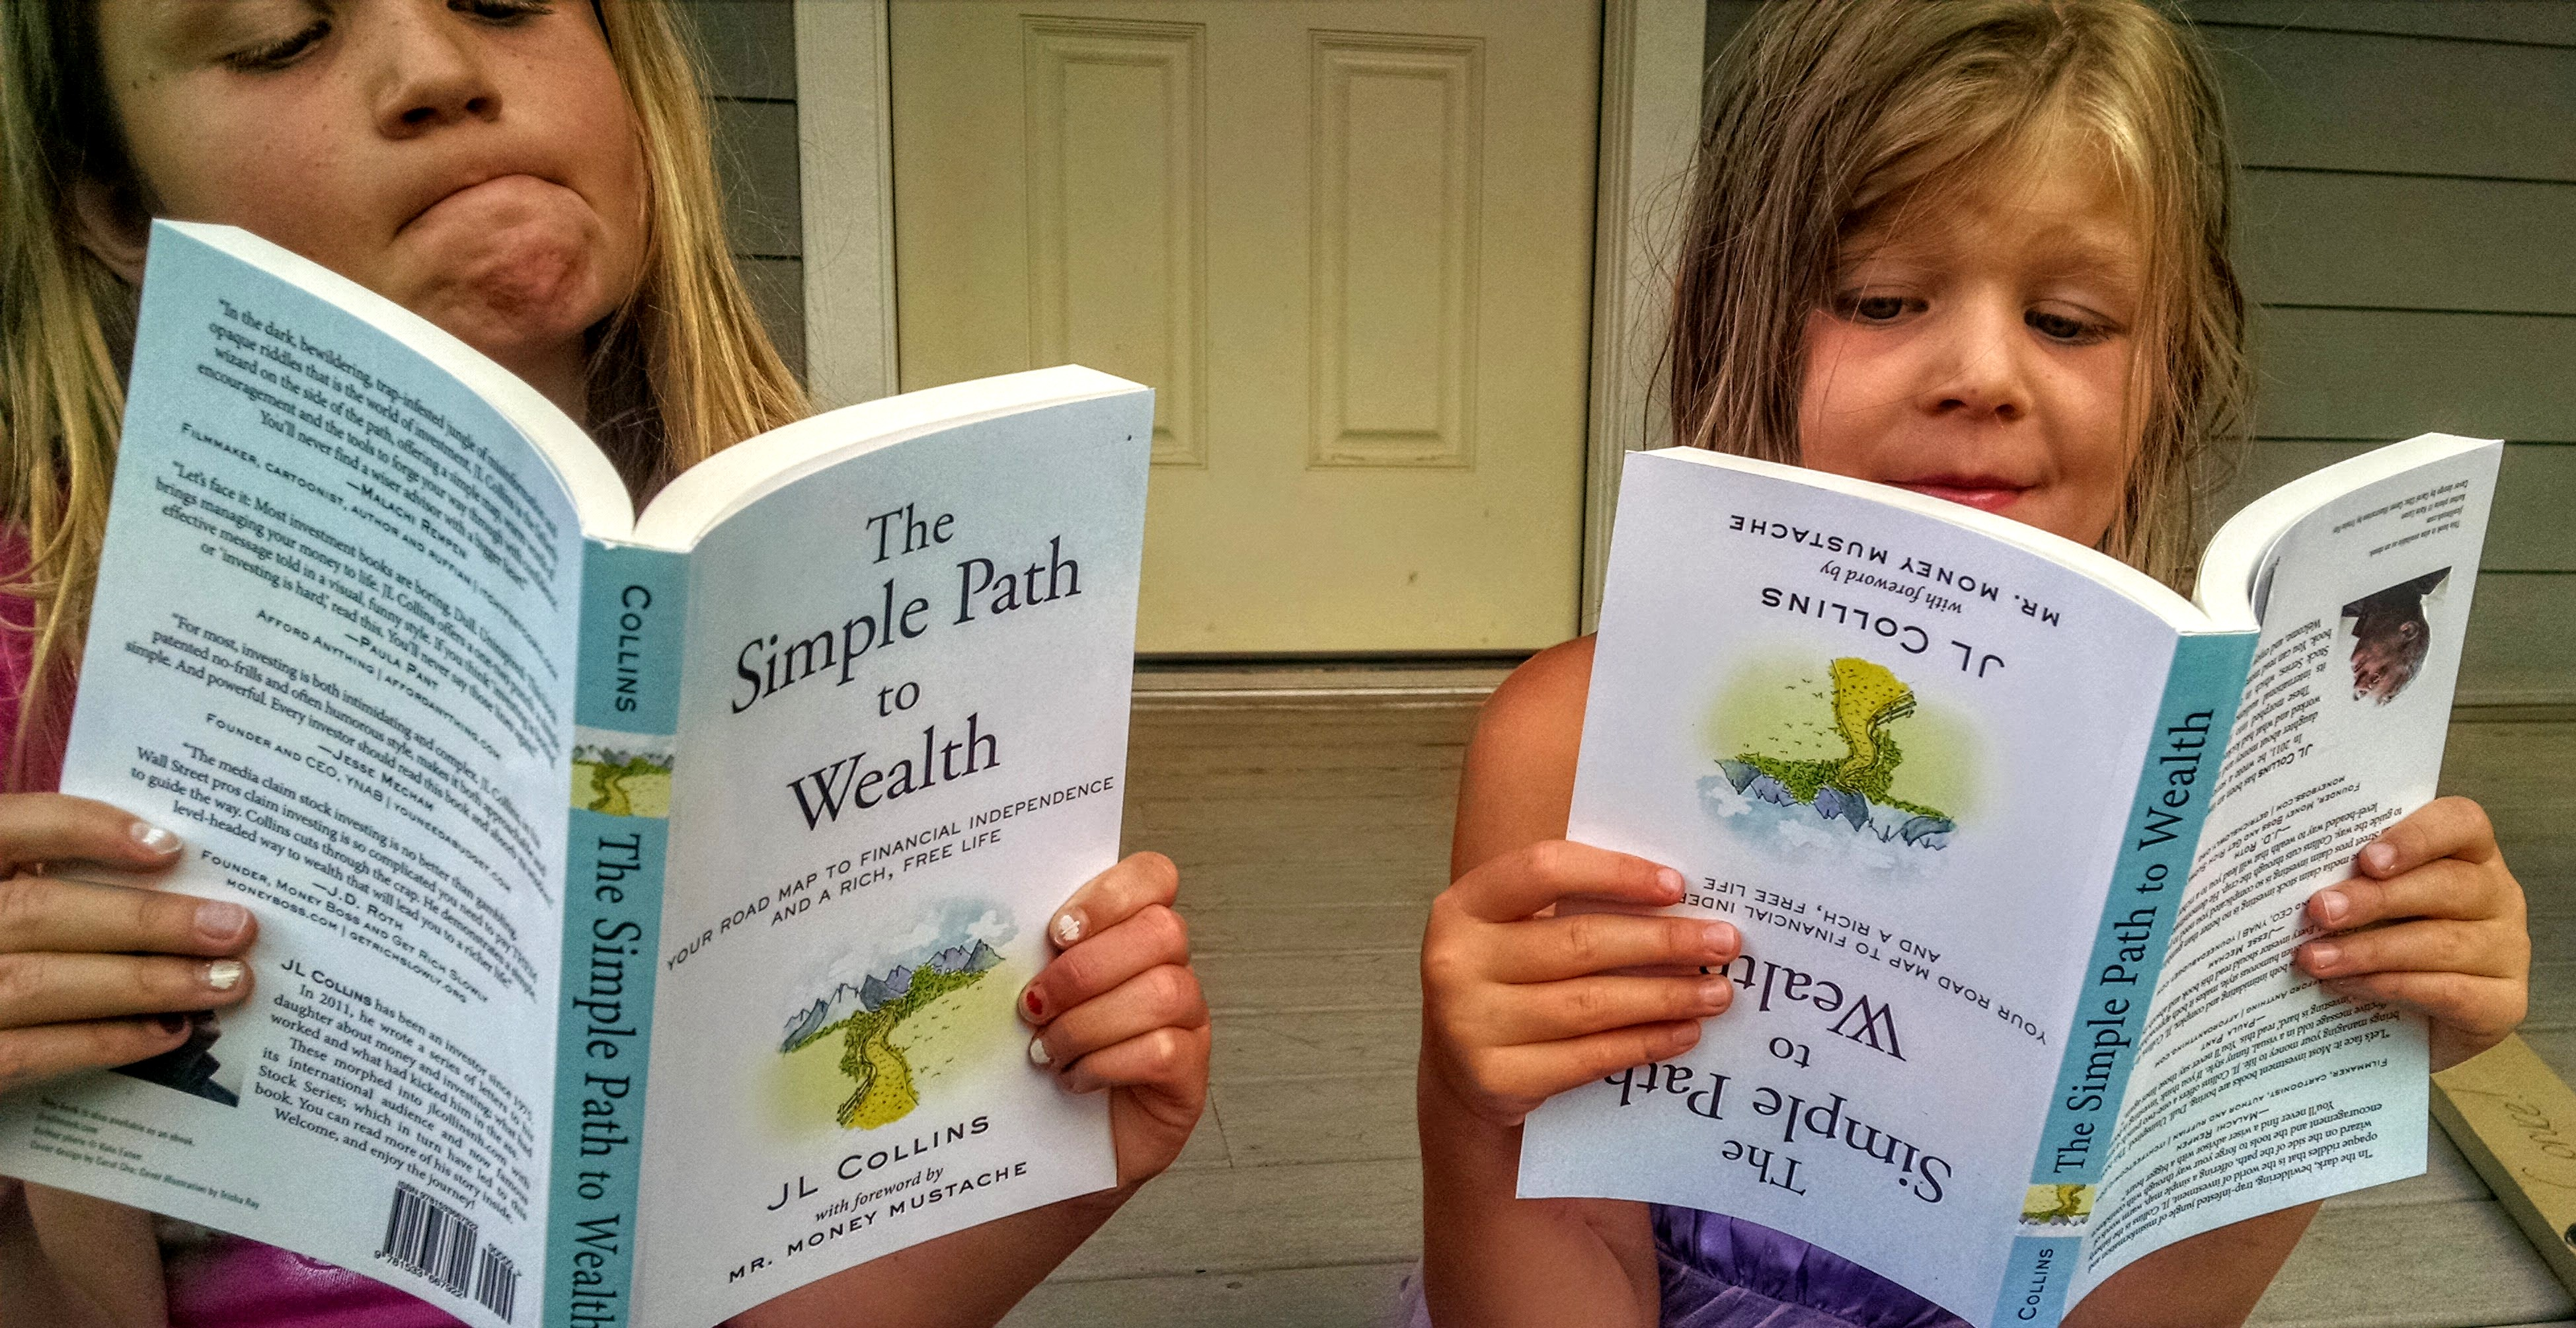 Worksheet Reading Reviews reviews of the simple path to wealth gone for summer spw read by little girls